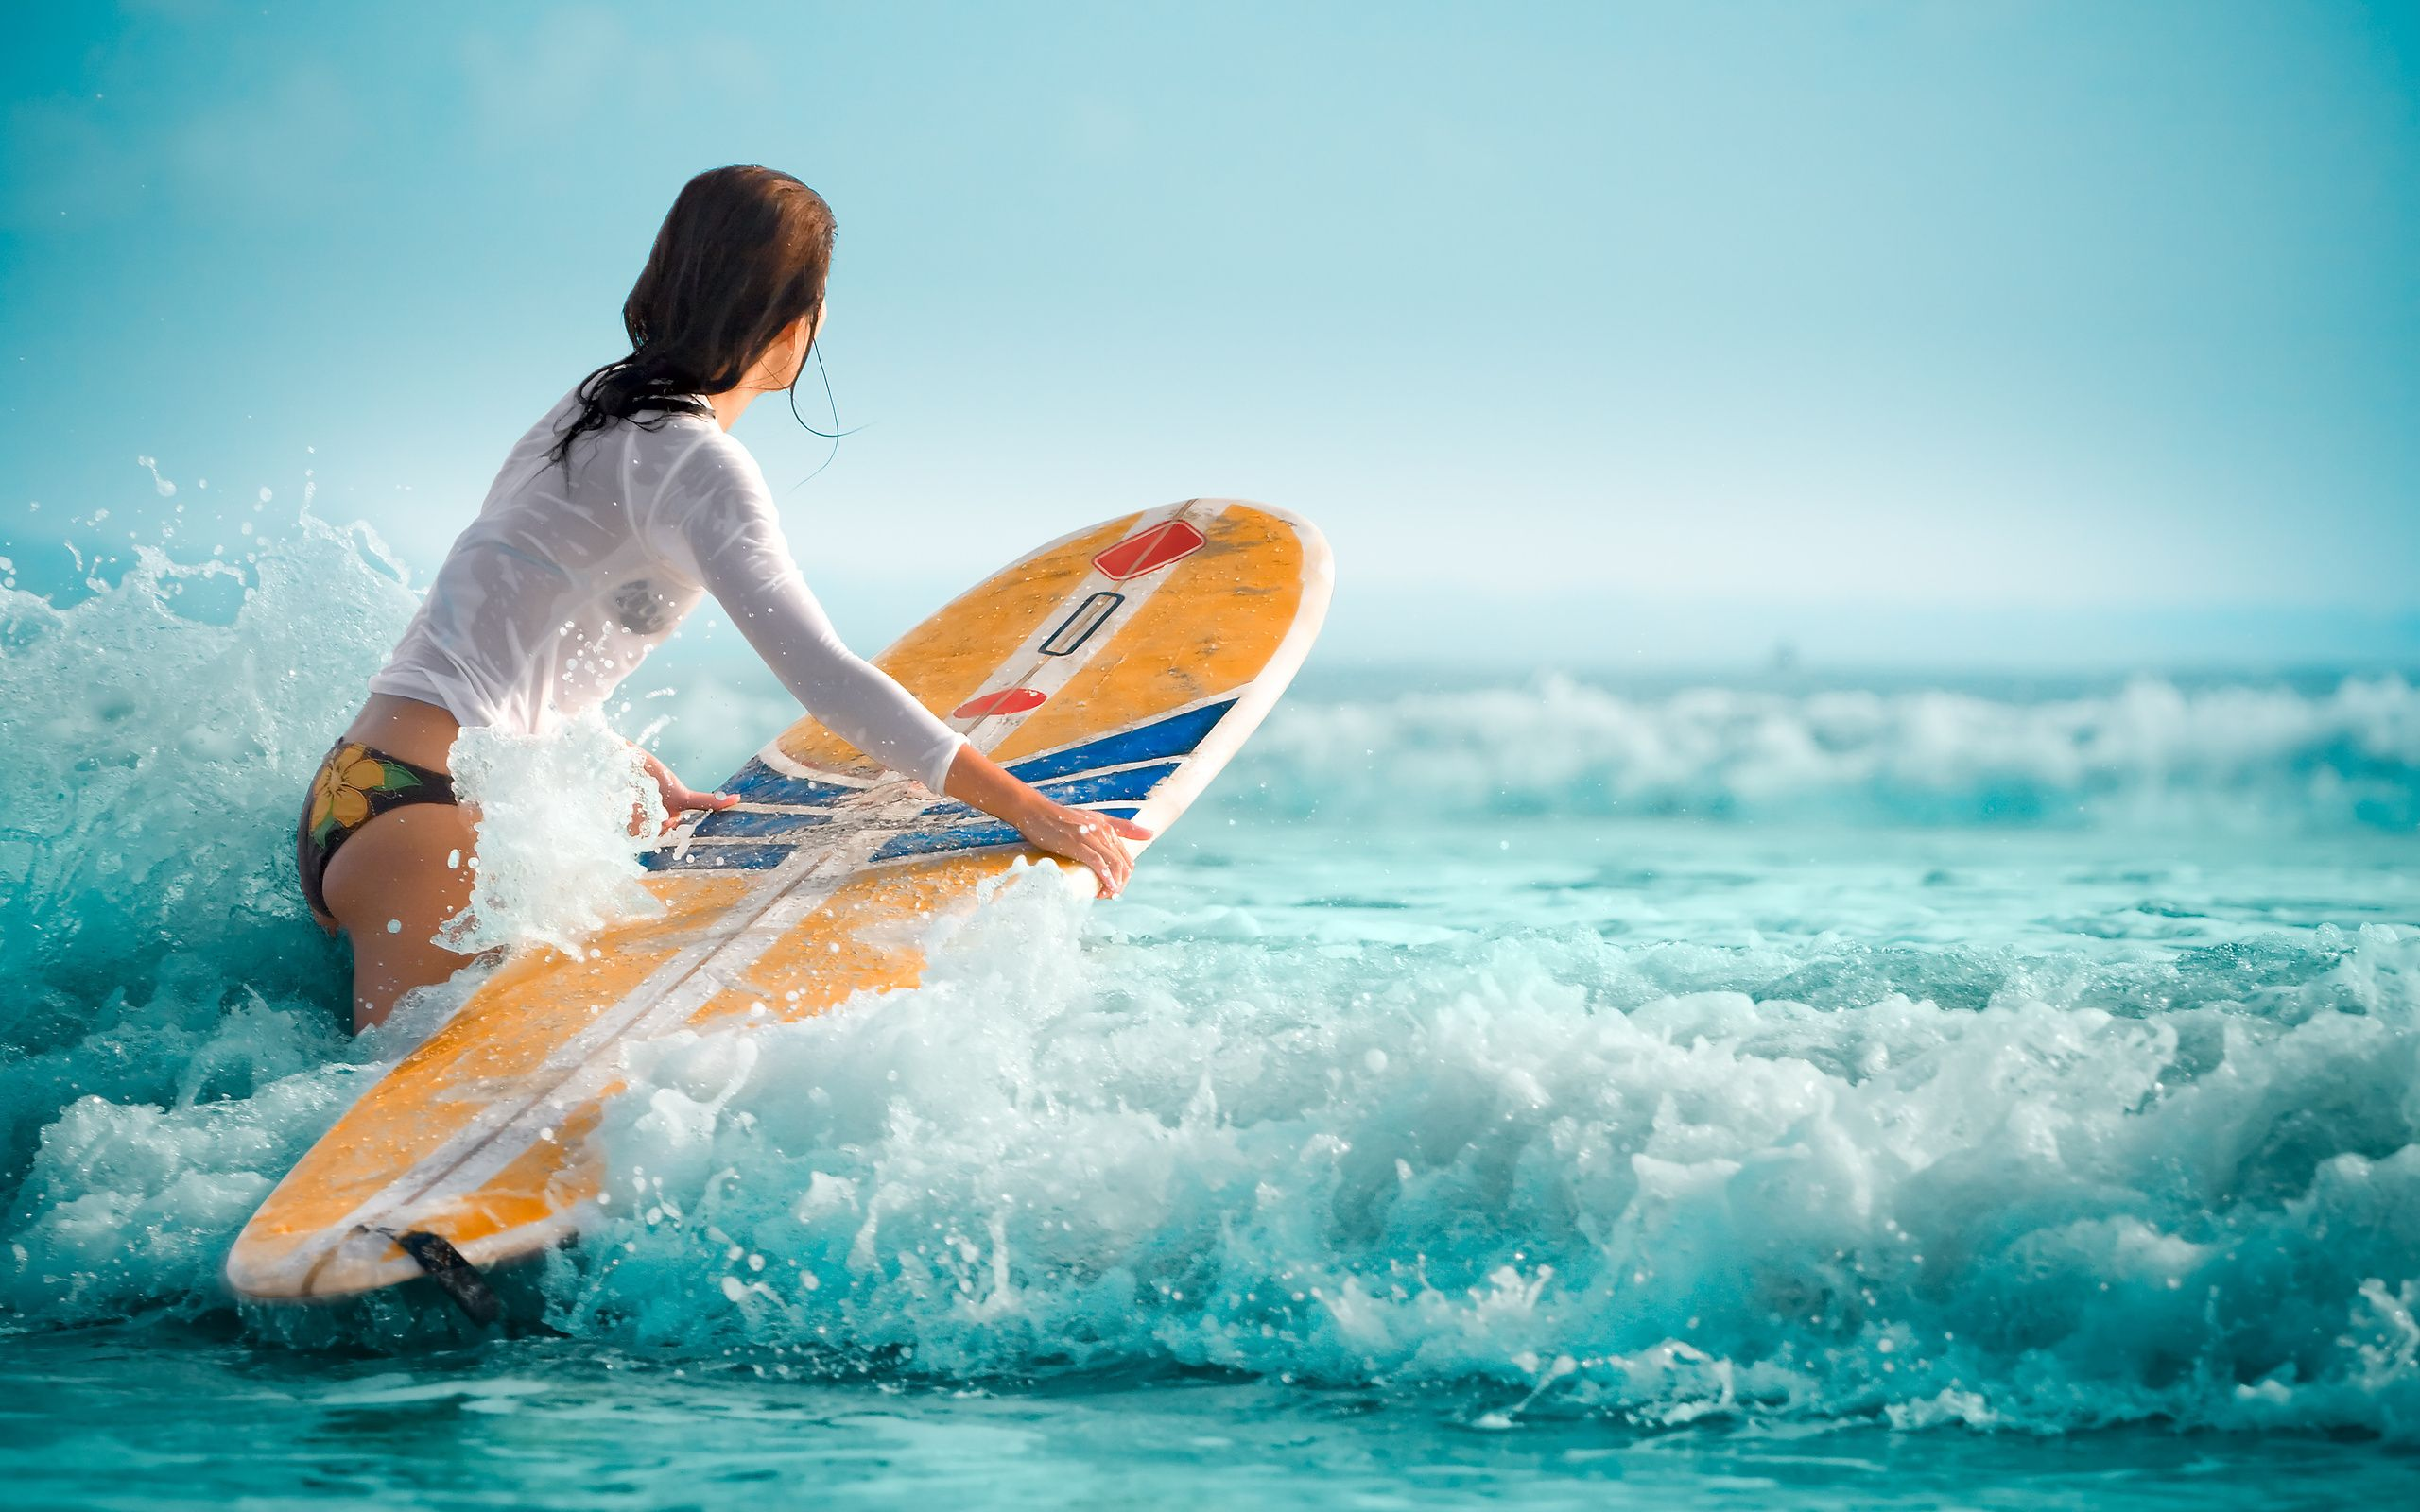 To Download Or Set This Free Girl Surfing Wallpaper As The Desktop